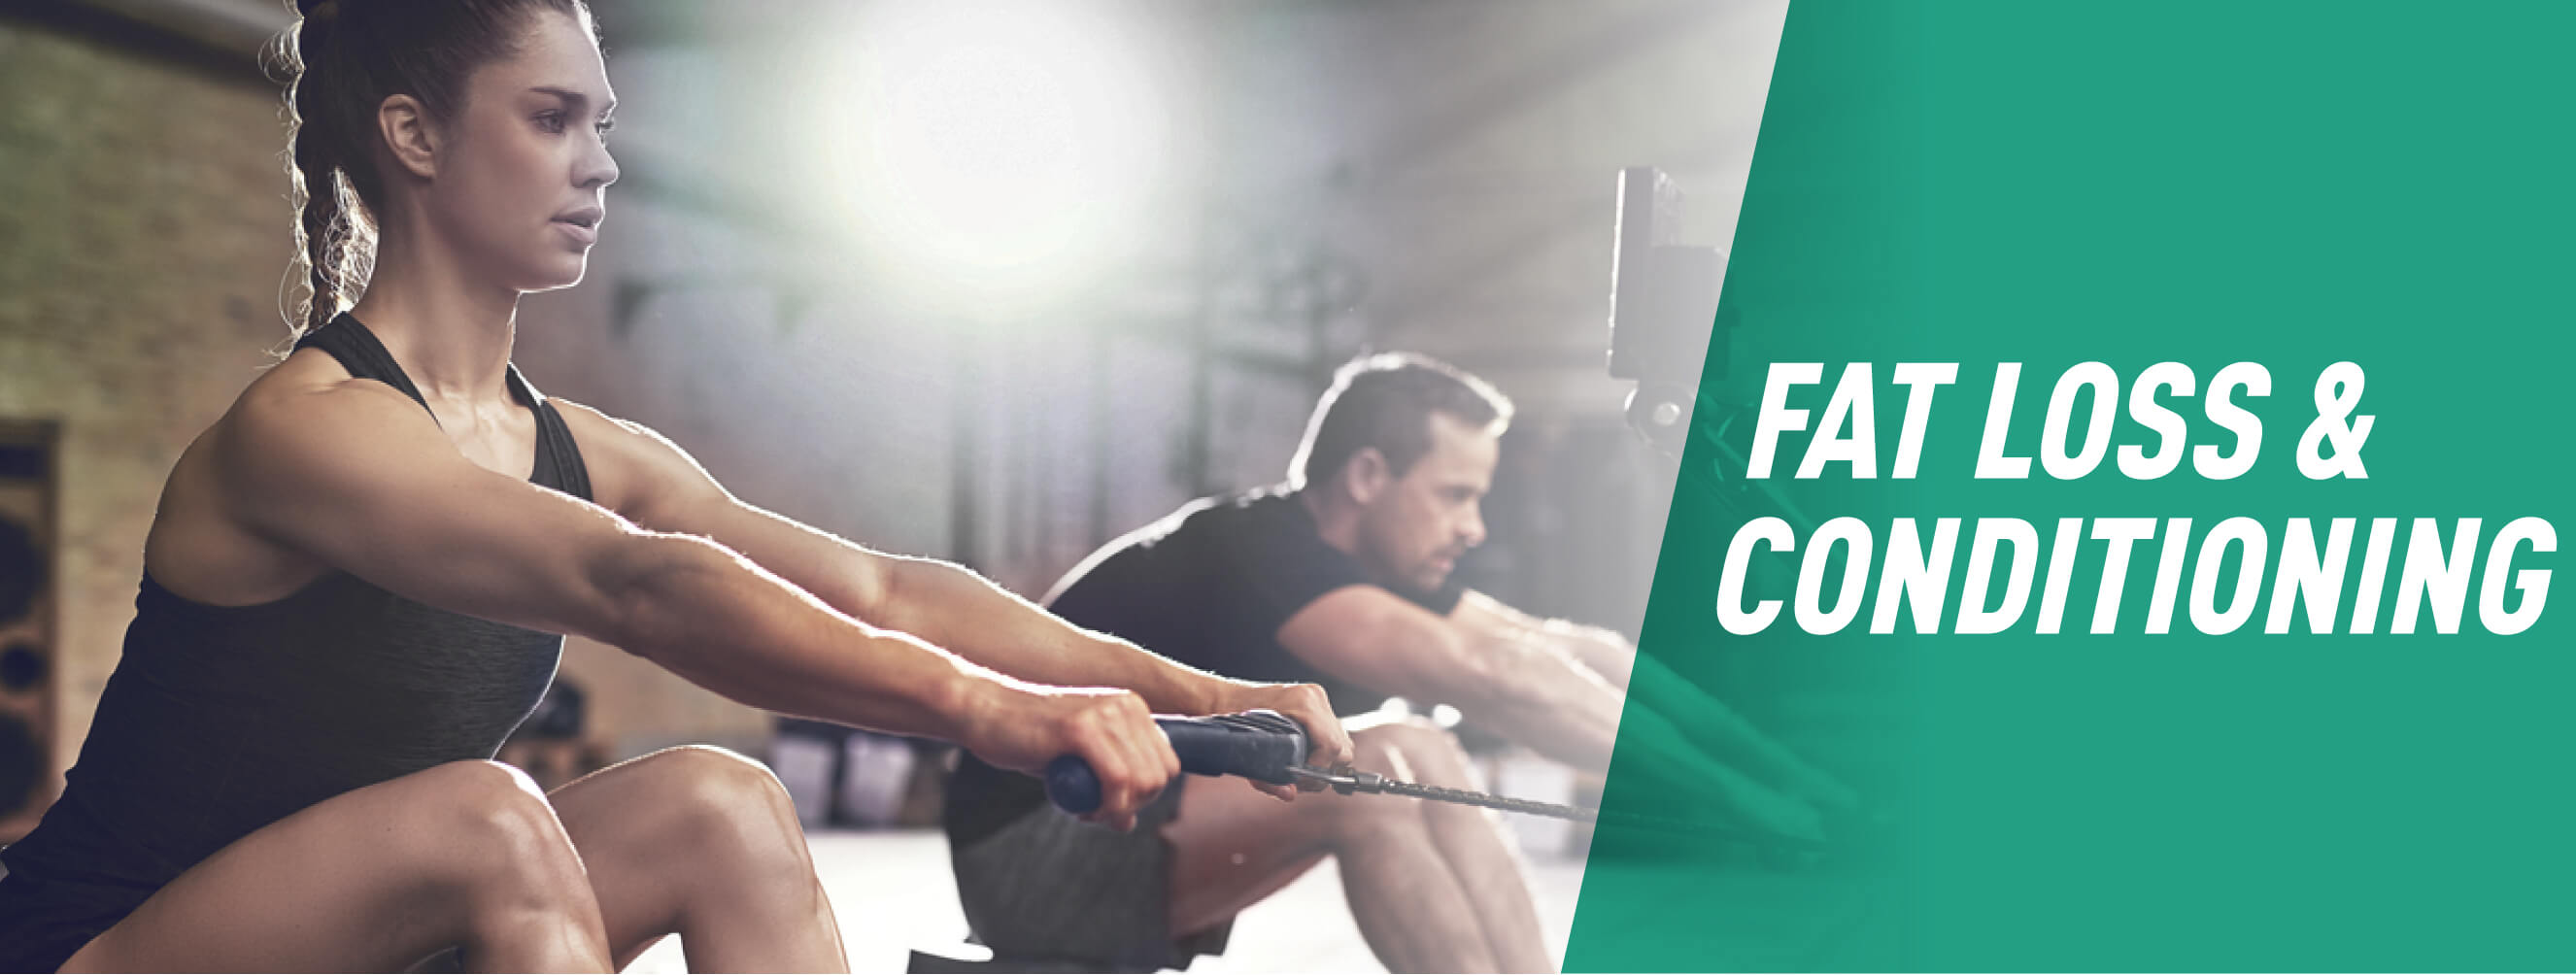 Fat Loss & Conditioning - Online Programme